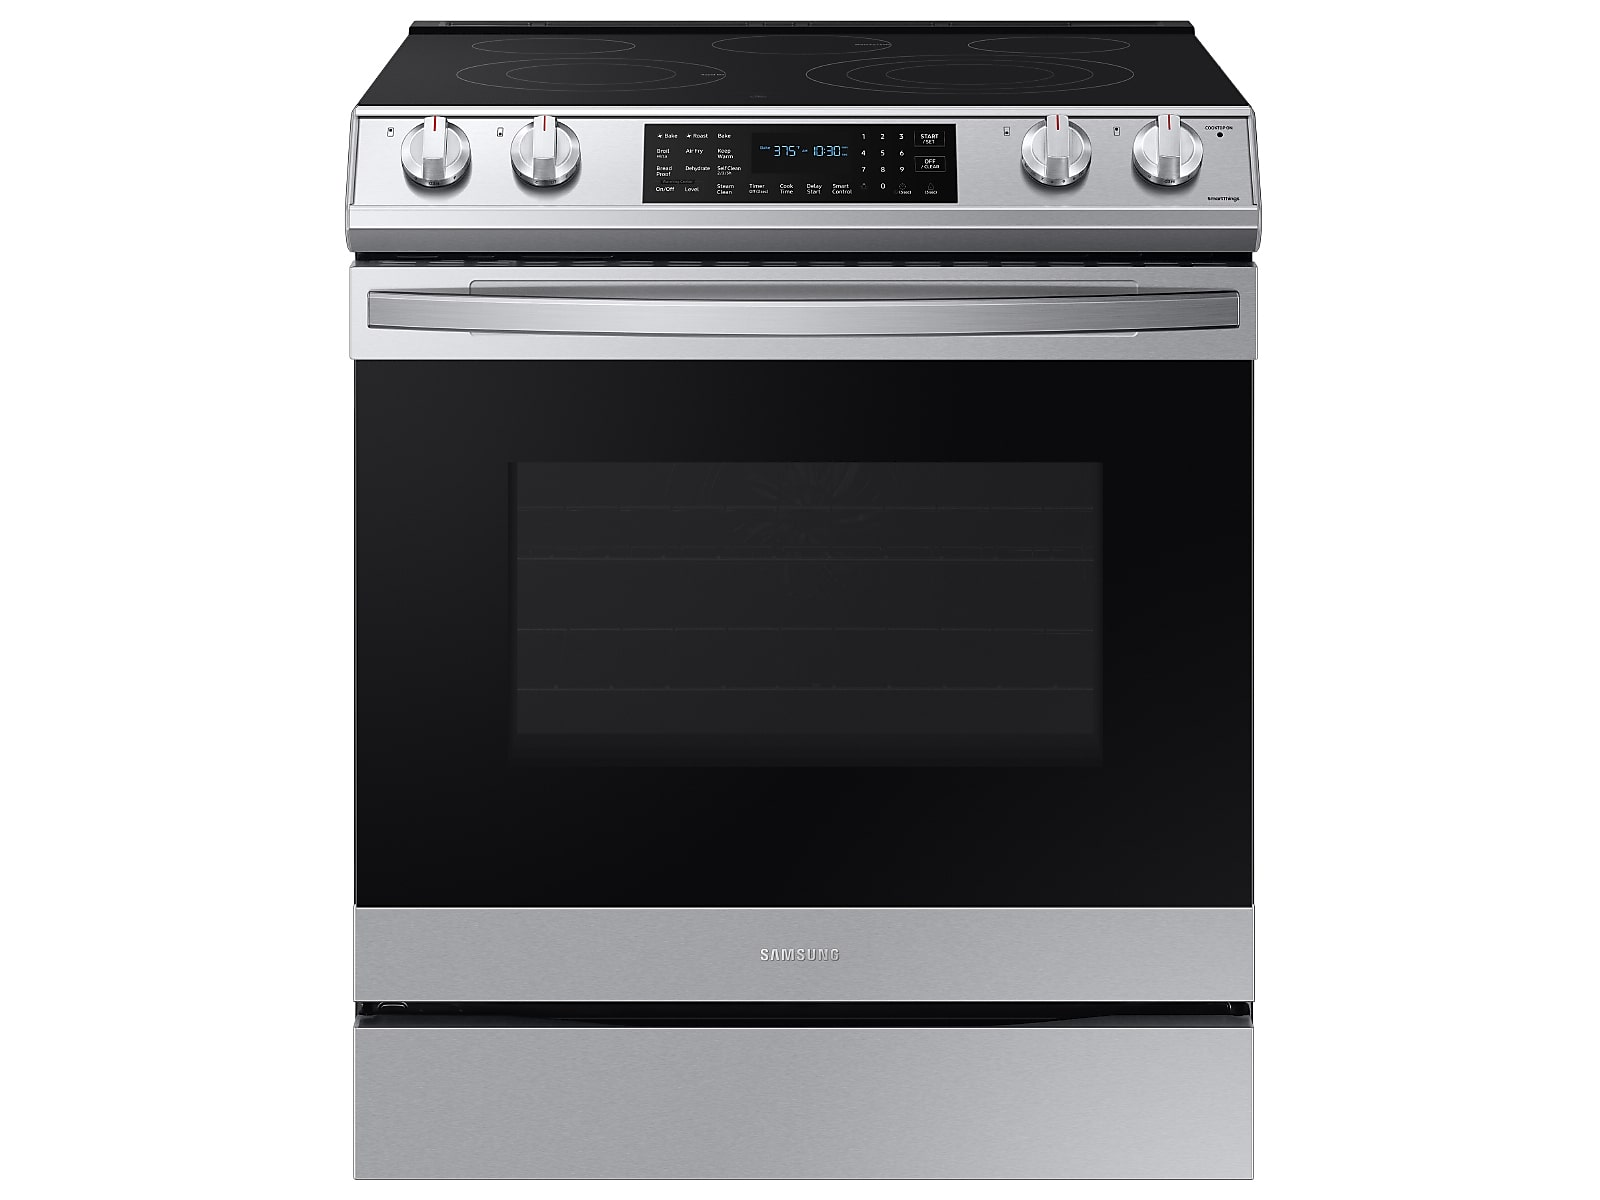 Samsung 6.3 cu. ft. Smart Slide-in Electric Range with Air Fry in Silver(NE63T8511SS/AA)